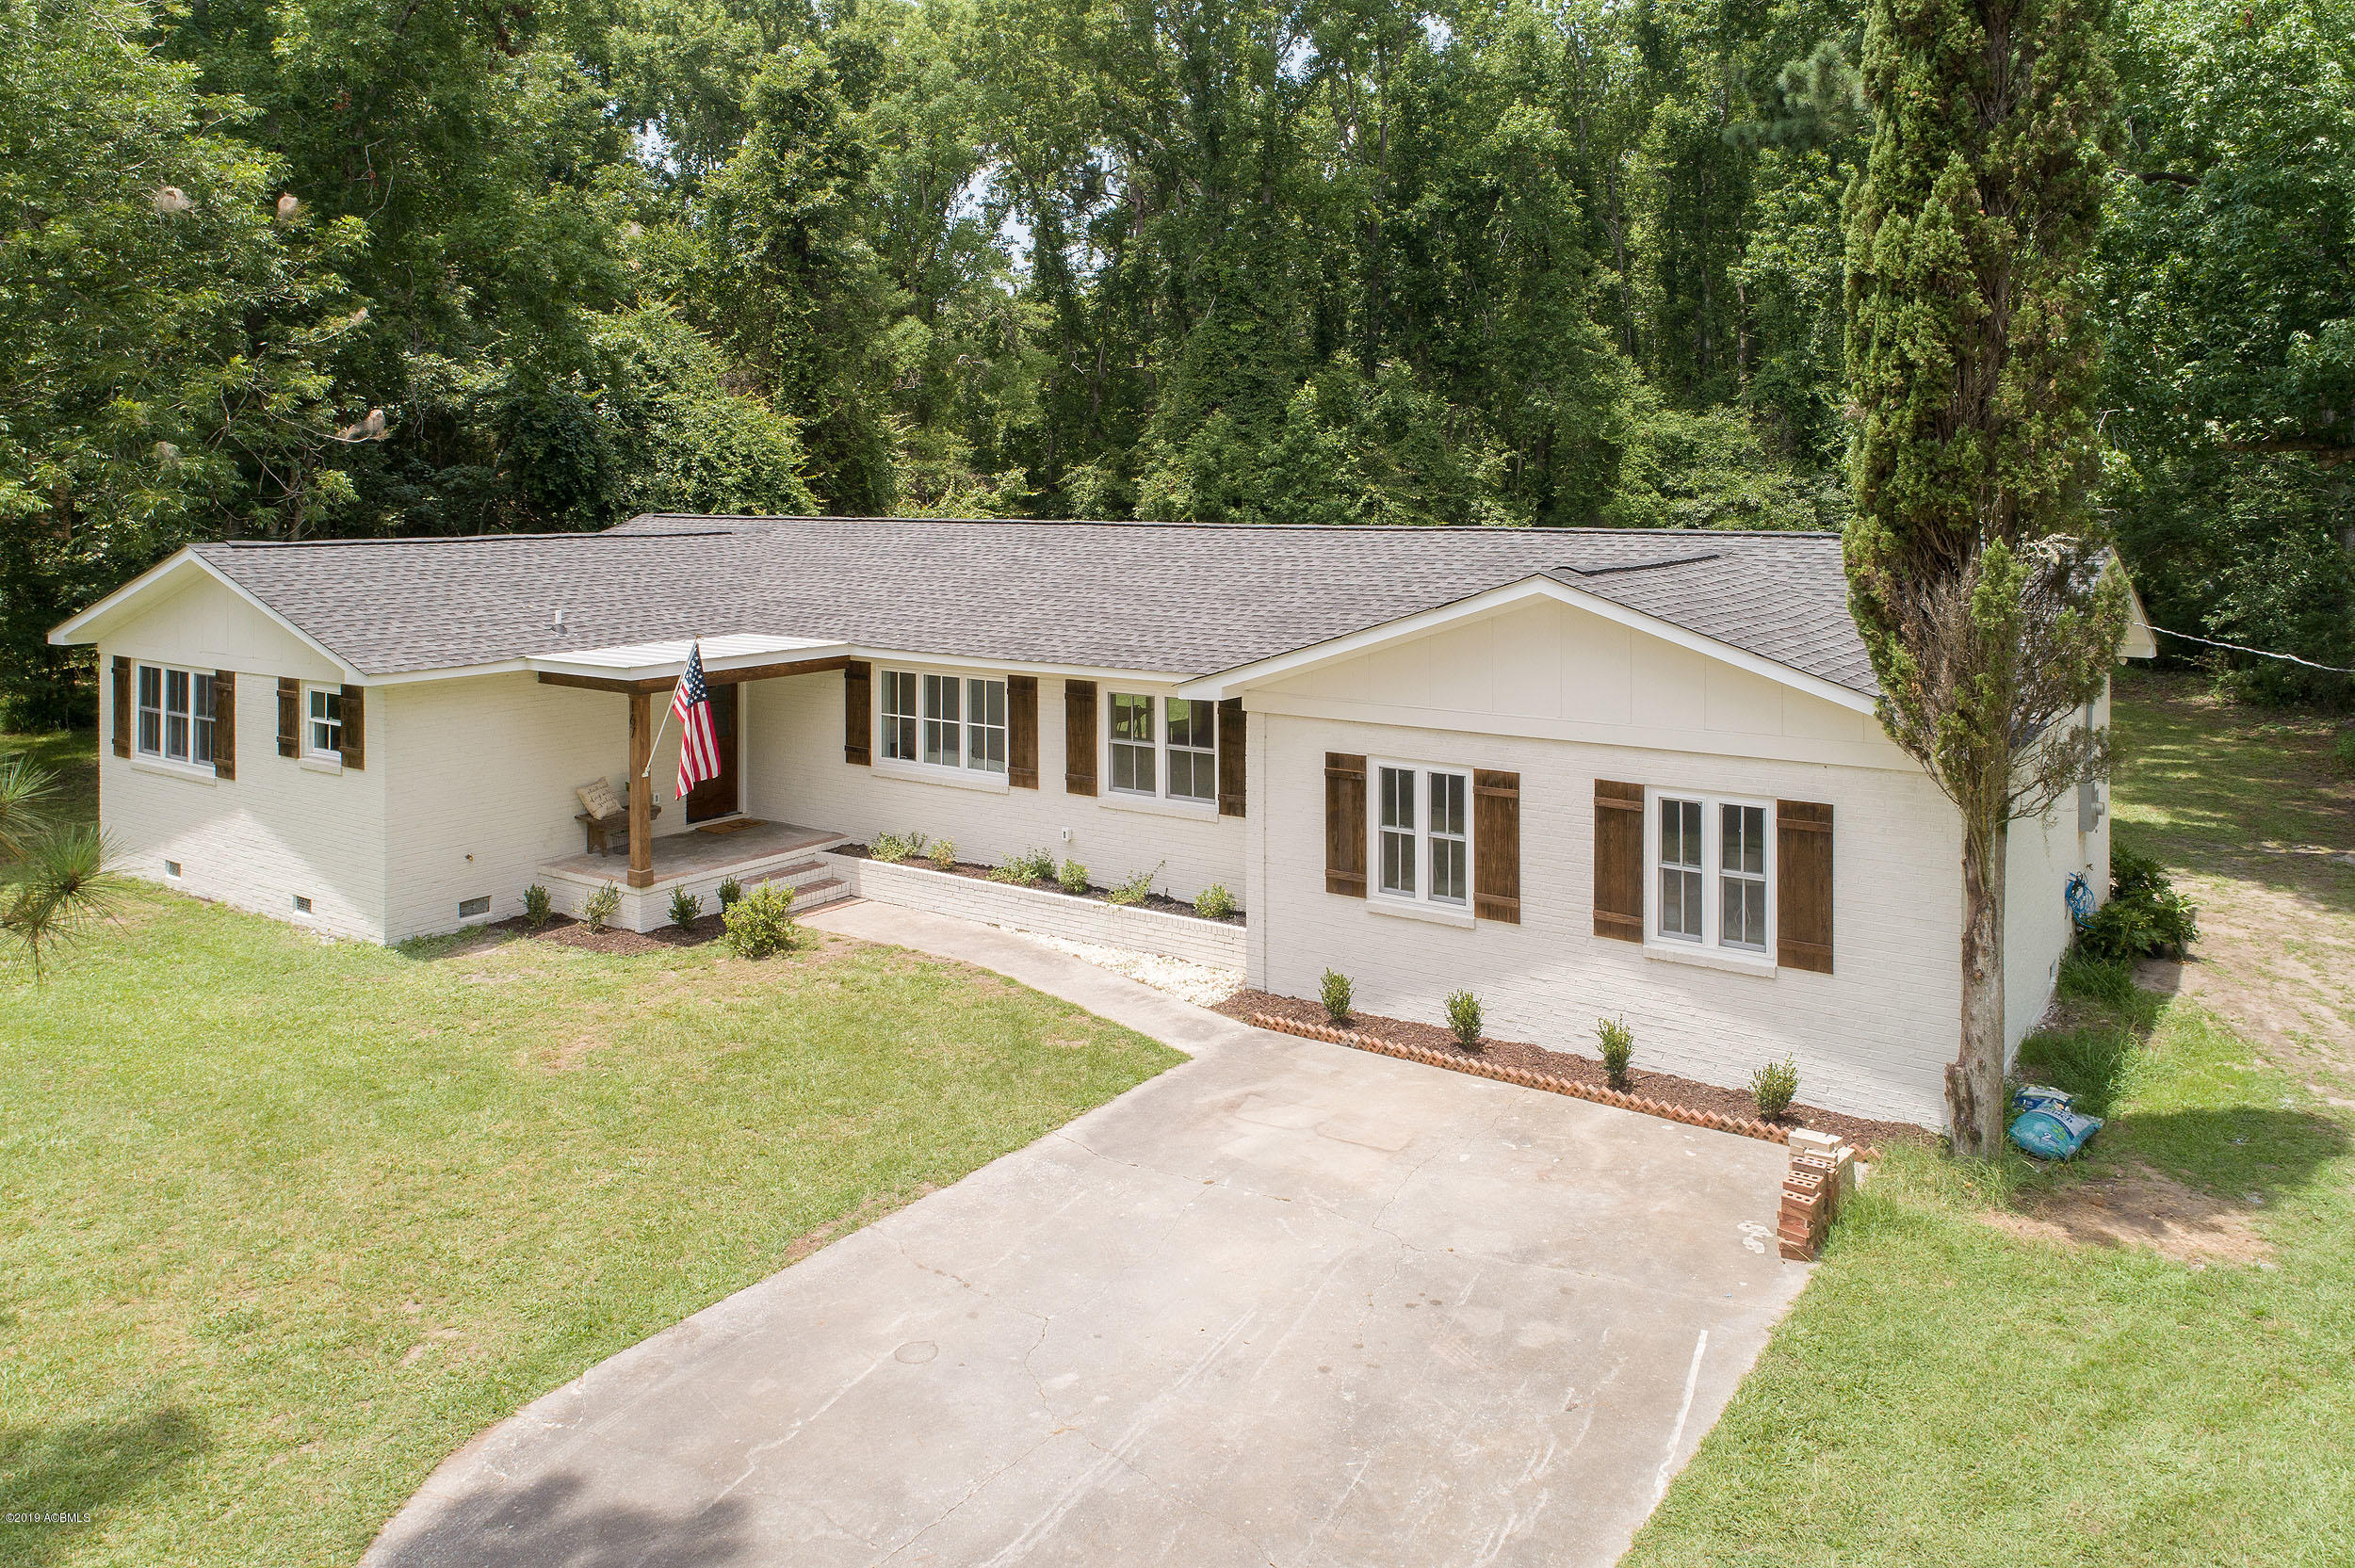 Photo of 167 Little Capers Road, Beaufort, SC 29907